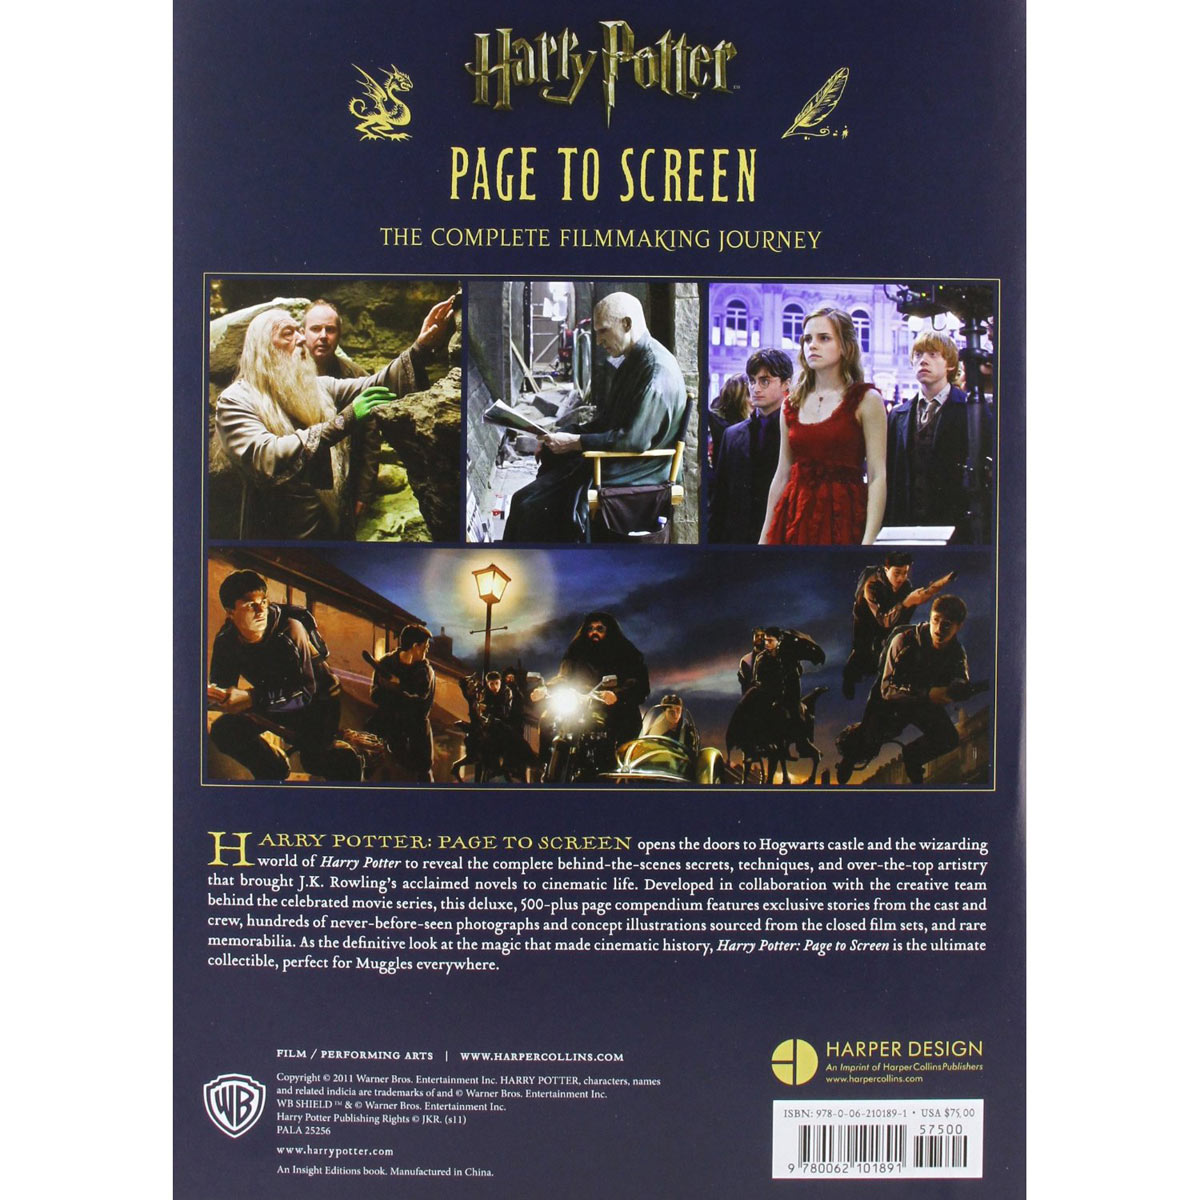 Comprar Libros De Harry Potter Libro Harry Potter Page To Screen Merchandising Harry Potter